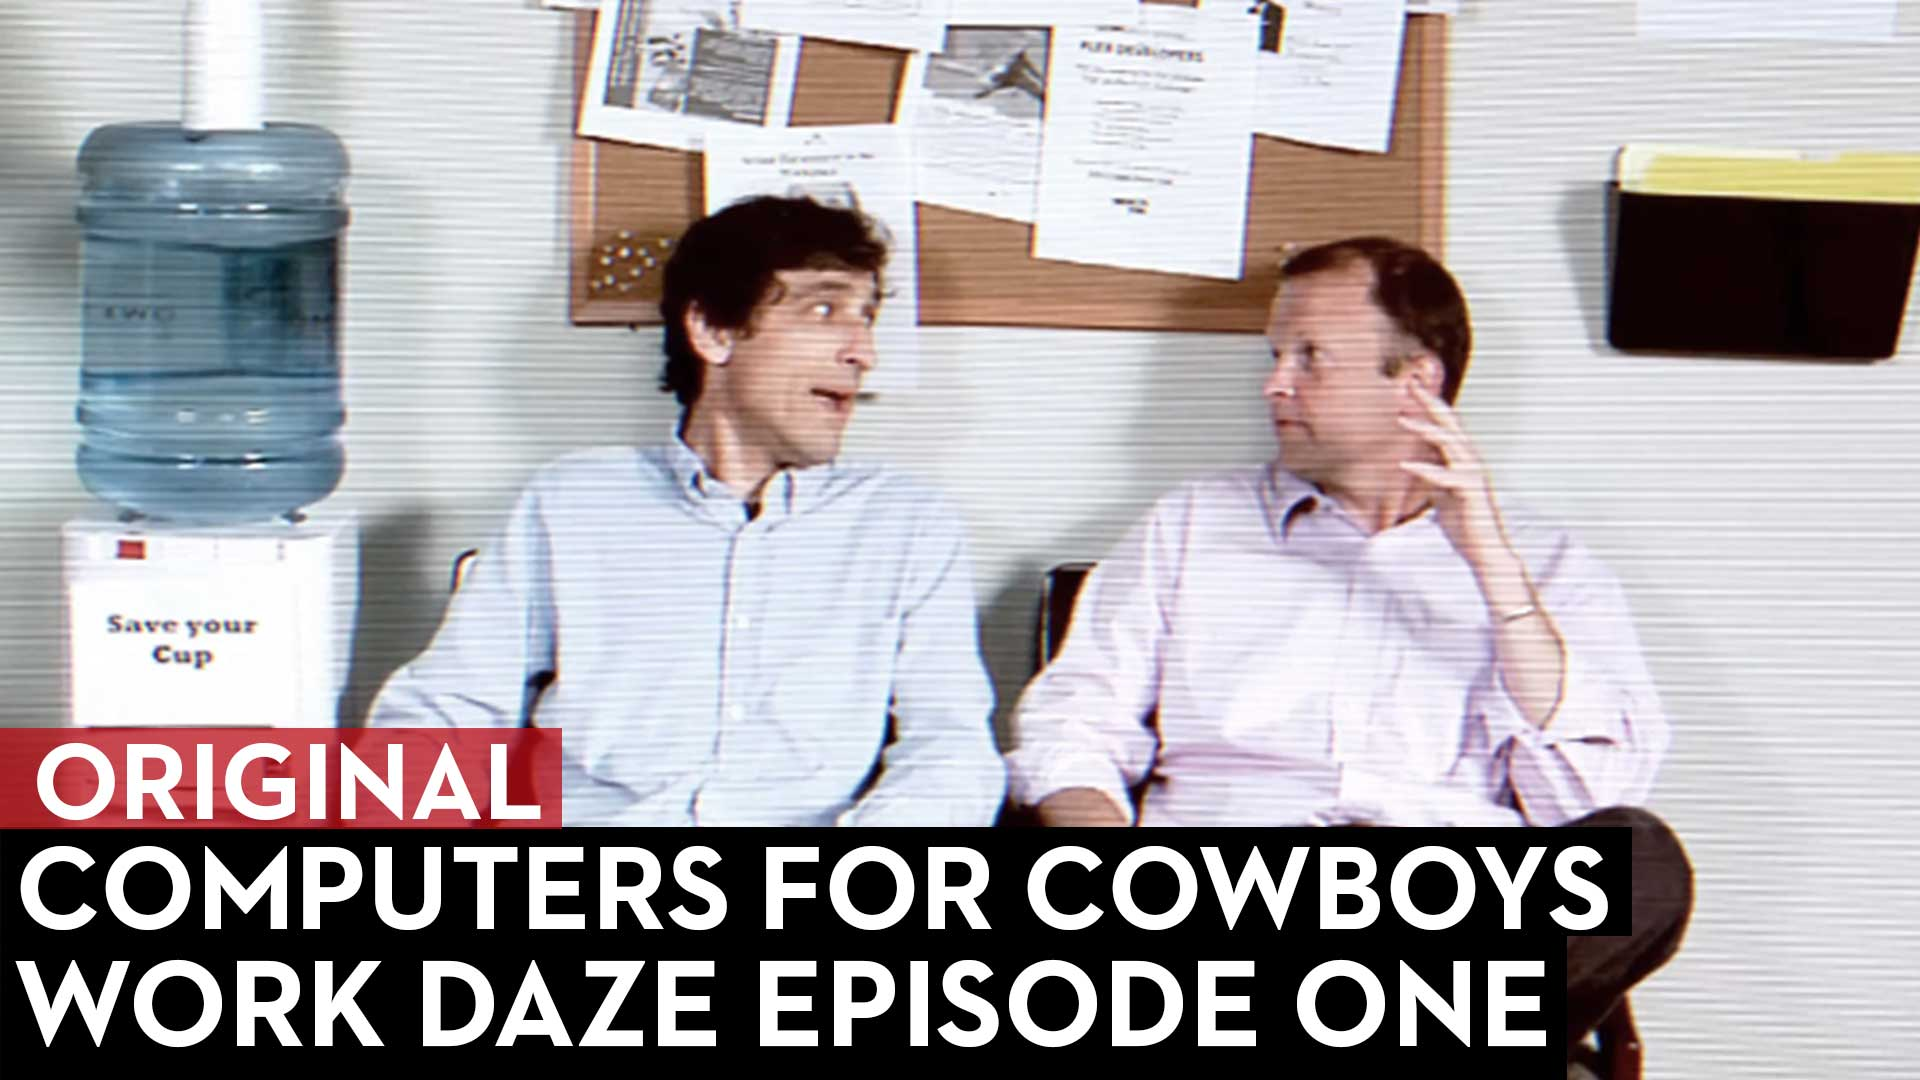 Work Daze Episode One: Computers for Cowboys